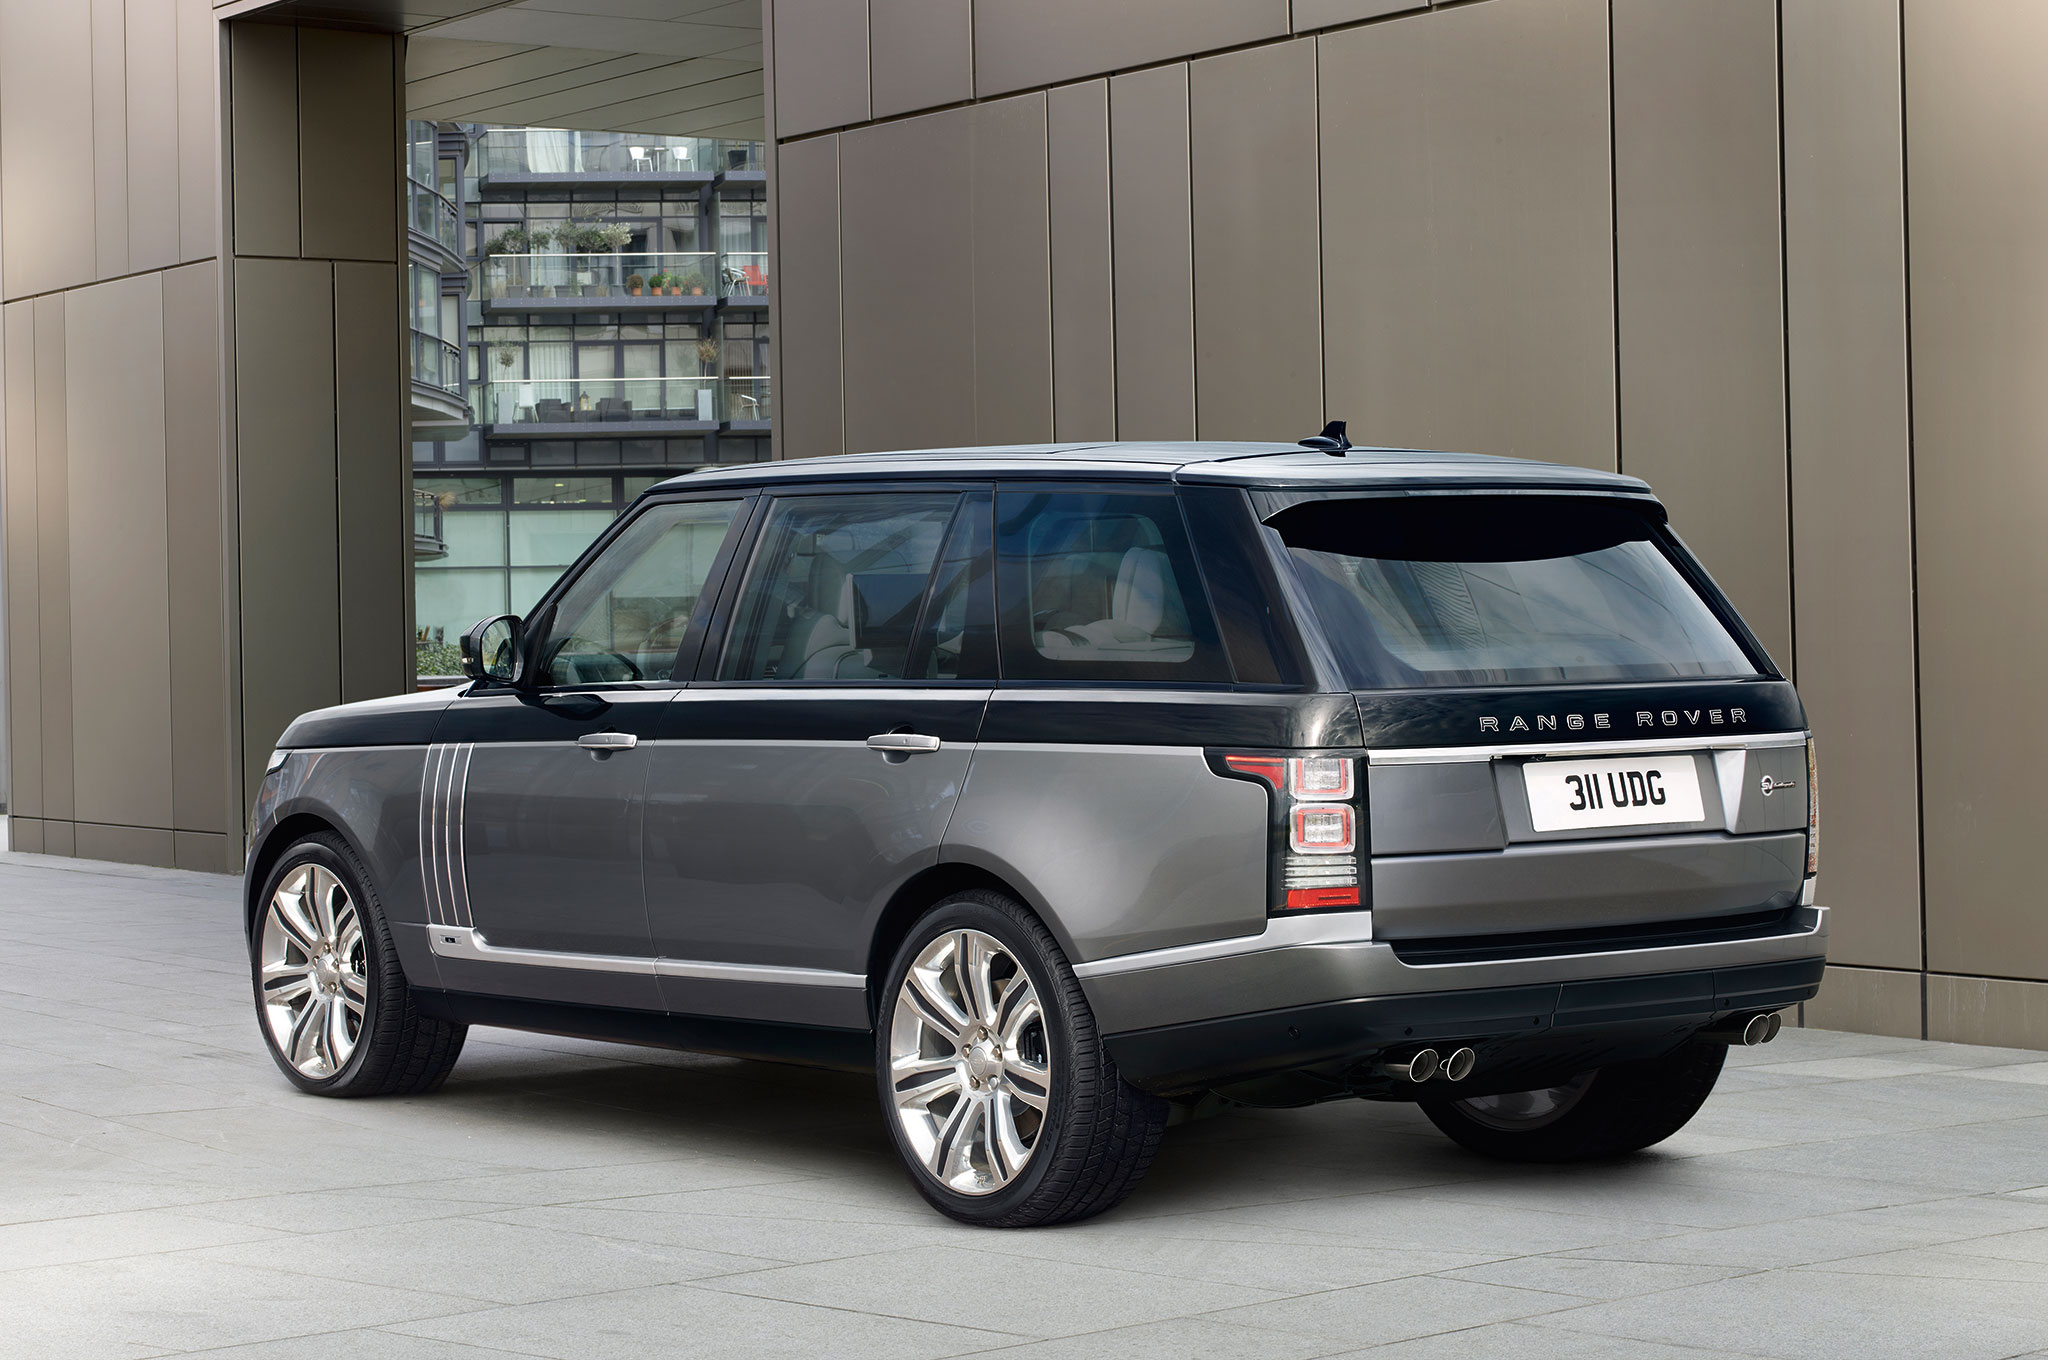 Next Generation Range Rover Discovery Could Move Upmarket